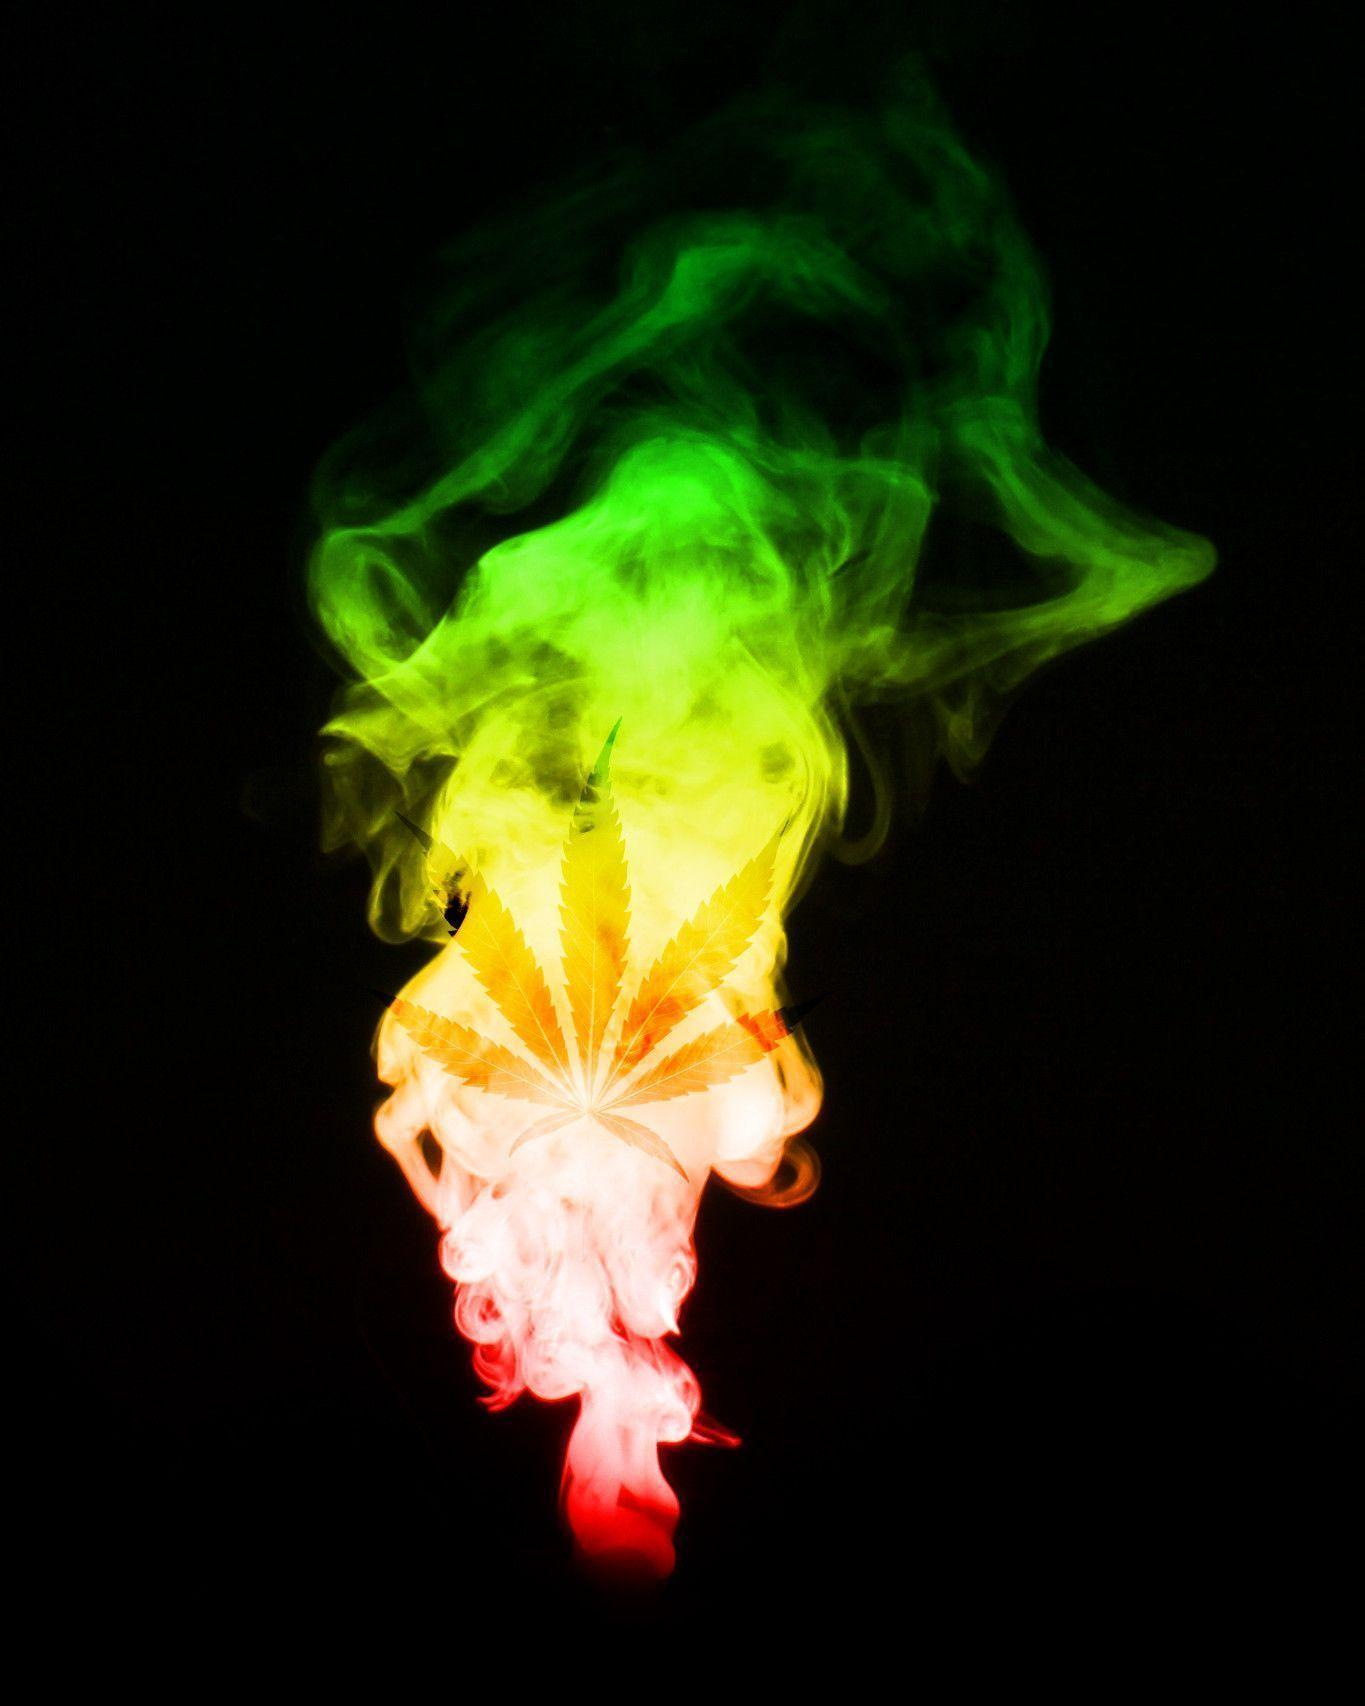 rasta smoke wallpaper moving - photo #13